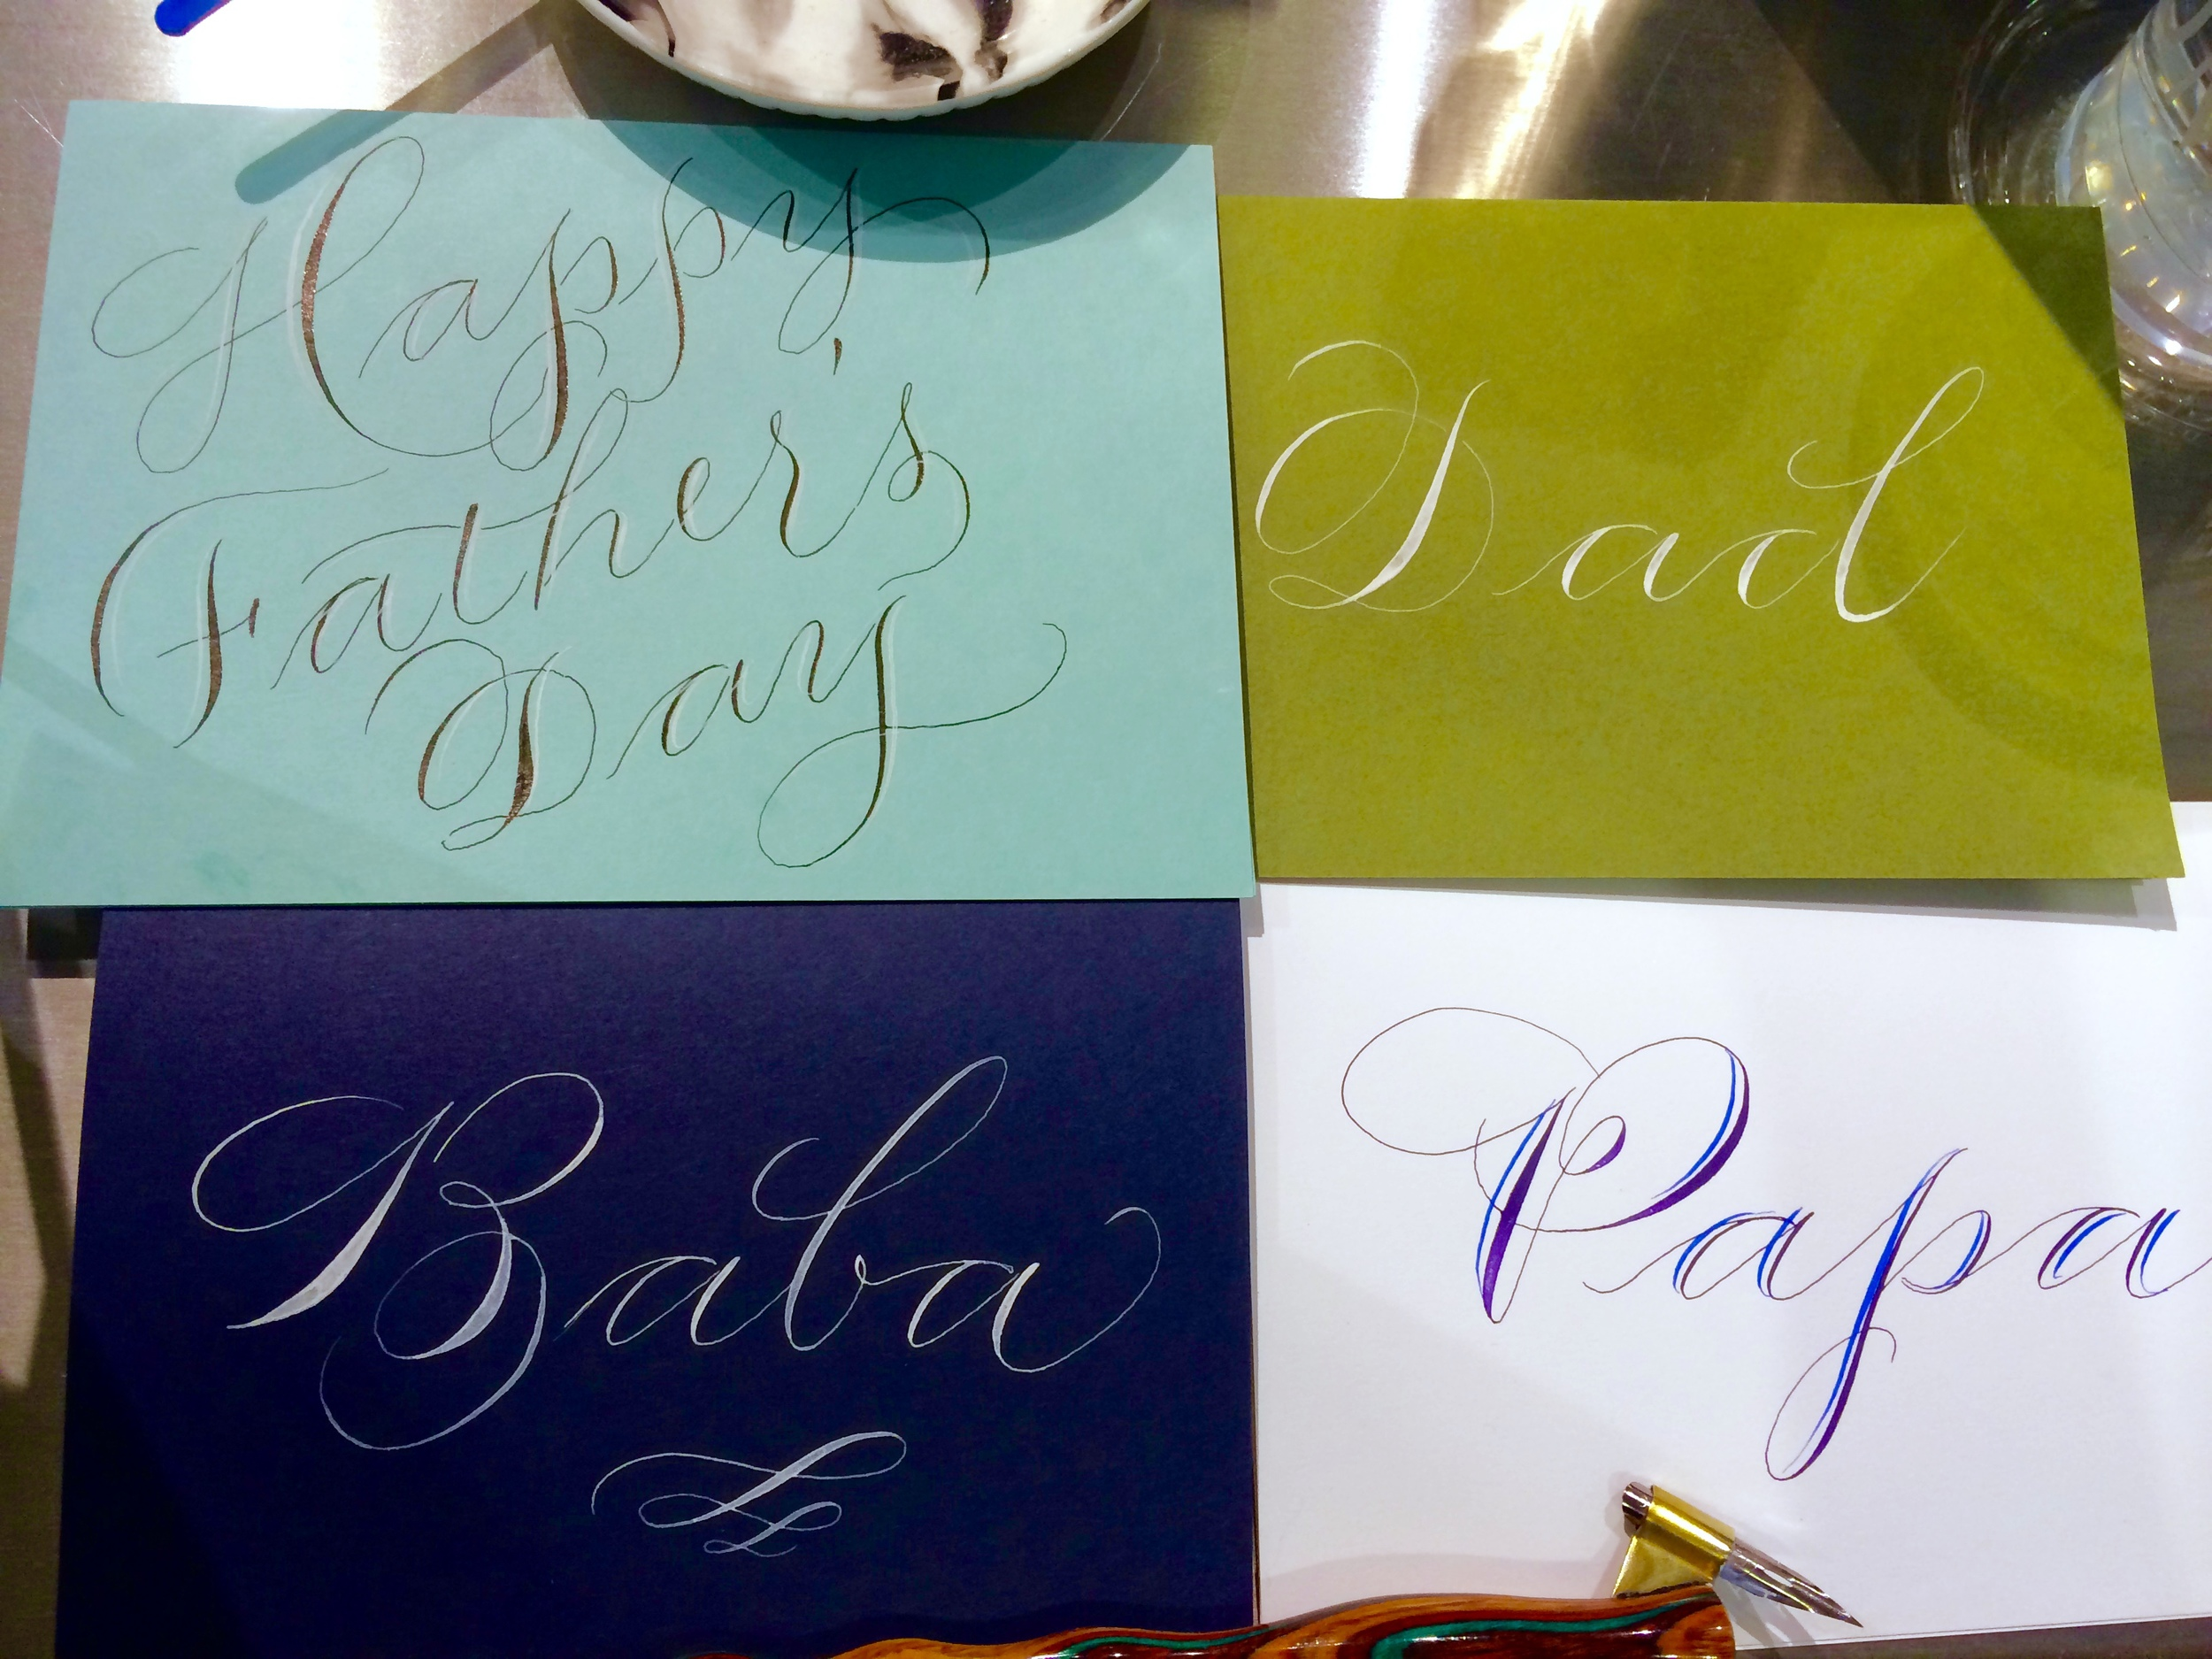 Some cards made by request yesterday. I love getting to write in so many different languages!